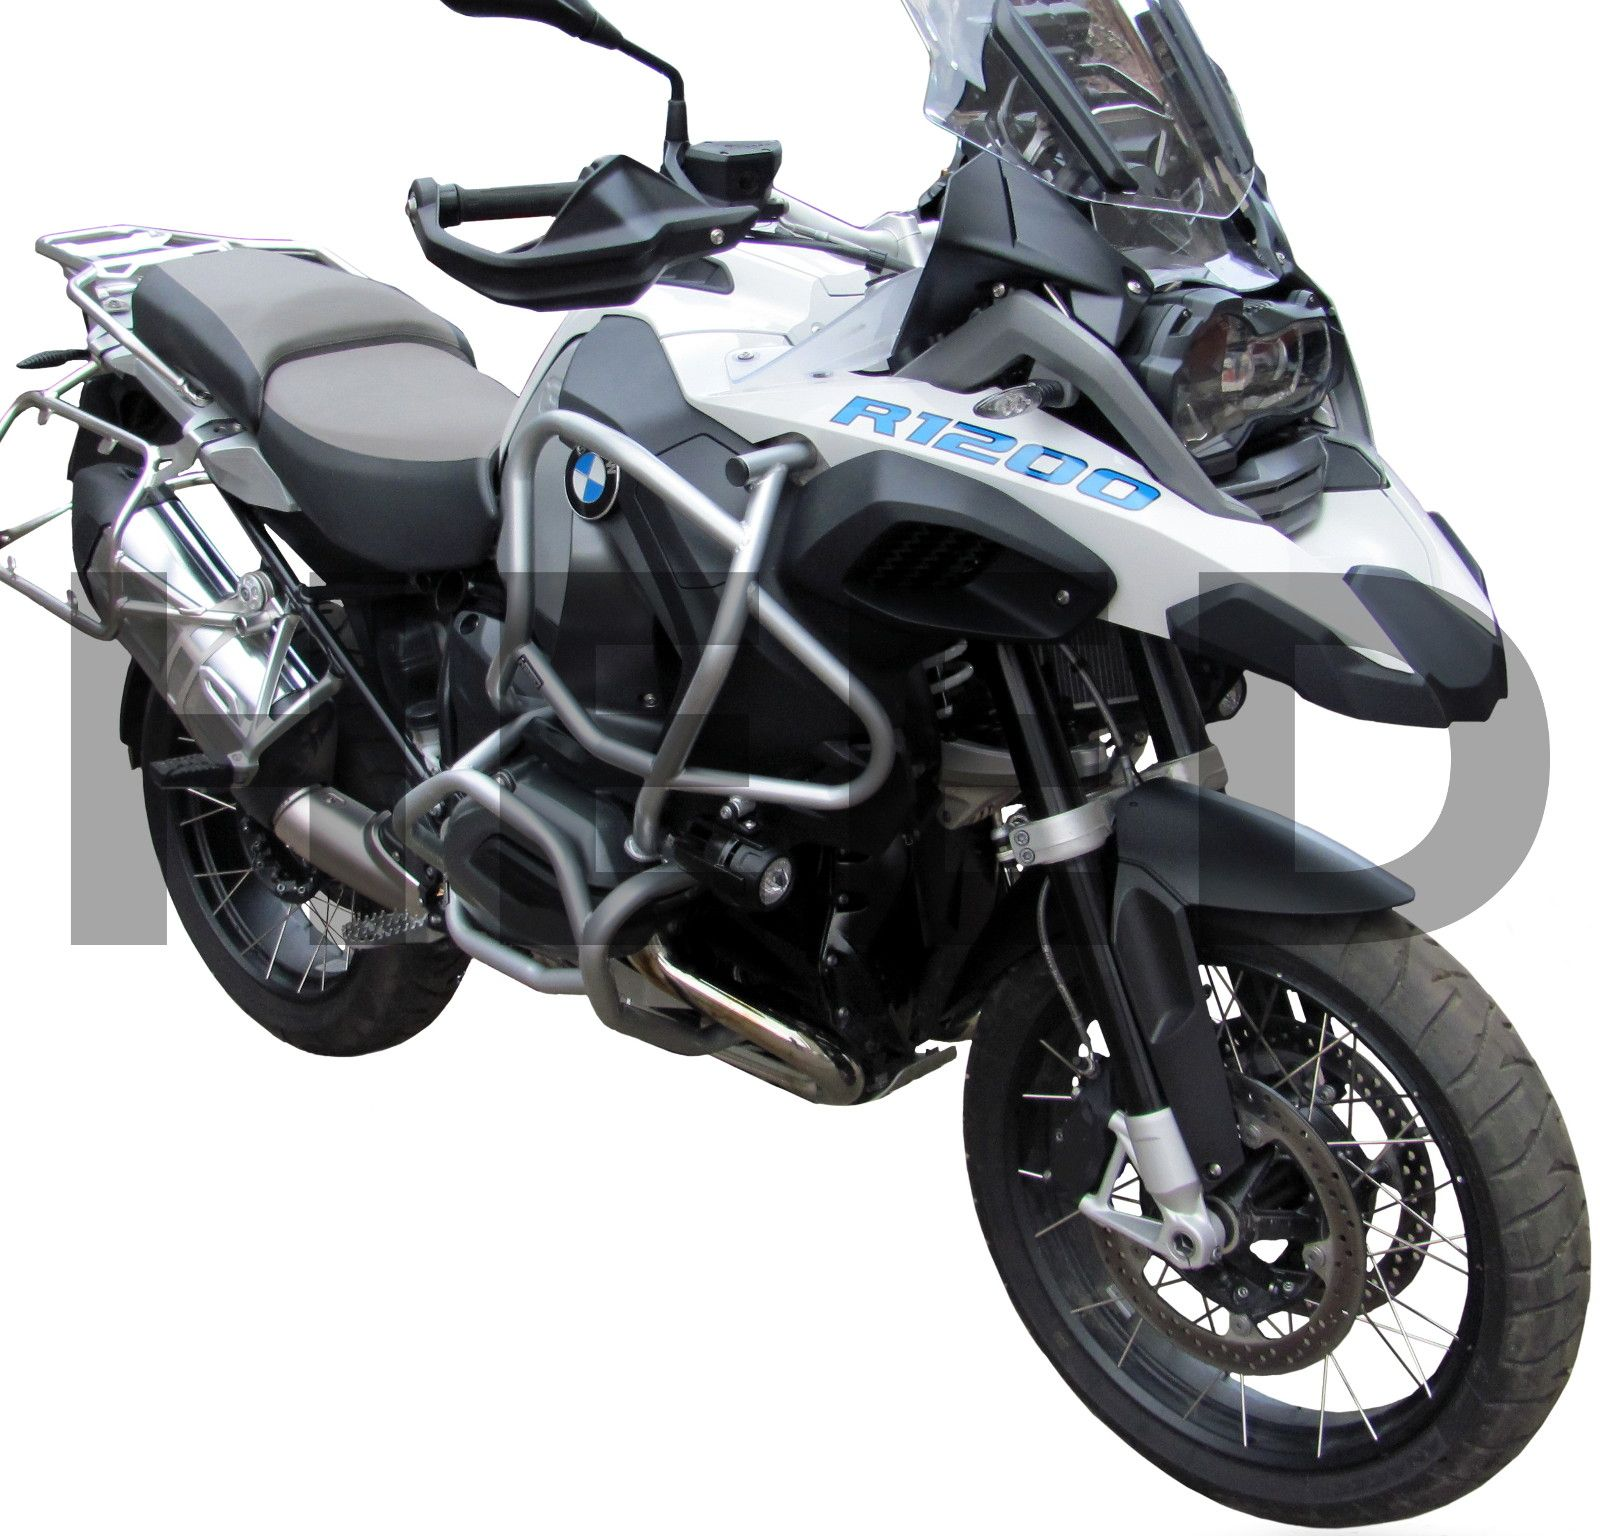 Heed Crash Bars Bmw R 1200 Gs Adventure 2017 2016 Extreme